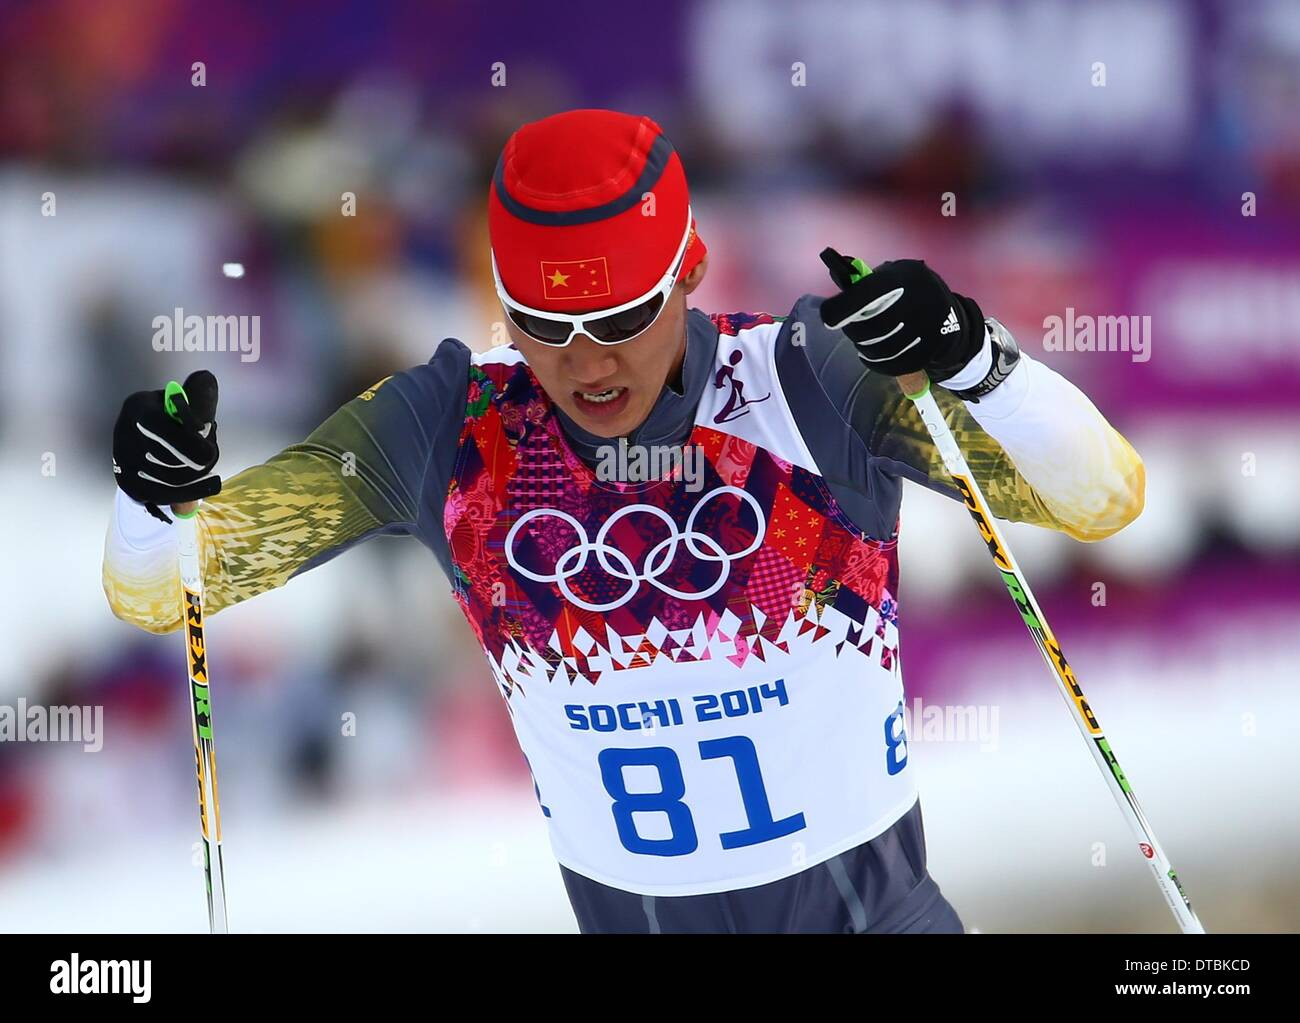 Krasnaya Polyana, Russia. 14th Feb, 2014. Sun Qinghai of Chaina competes during the Men's 15km Classic Cross Country Stock Photo